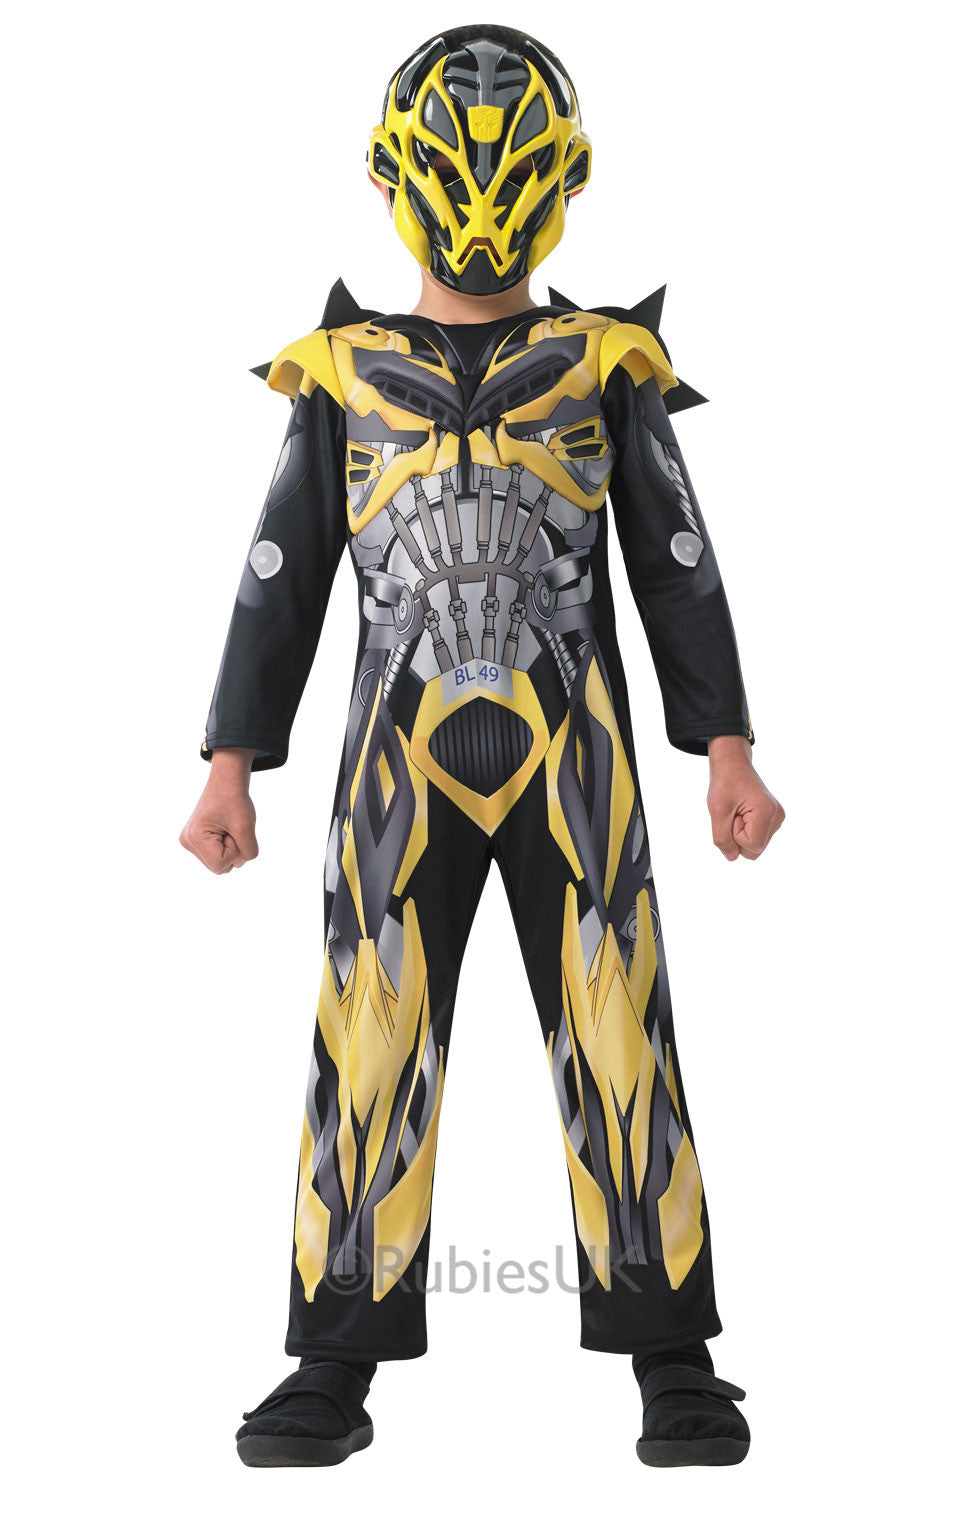 BUMBLEBEE TRANSFORMERS 4 DELUXE COSTUME - SIZE L